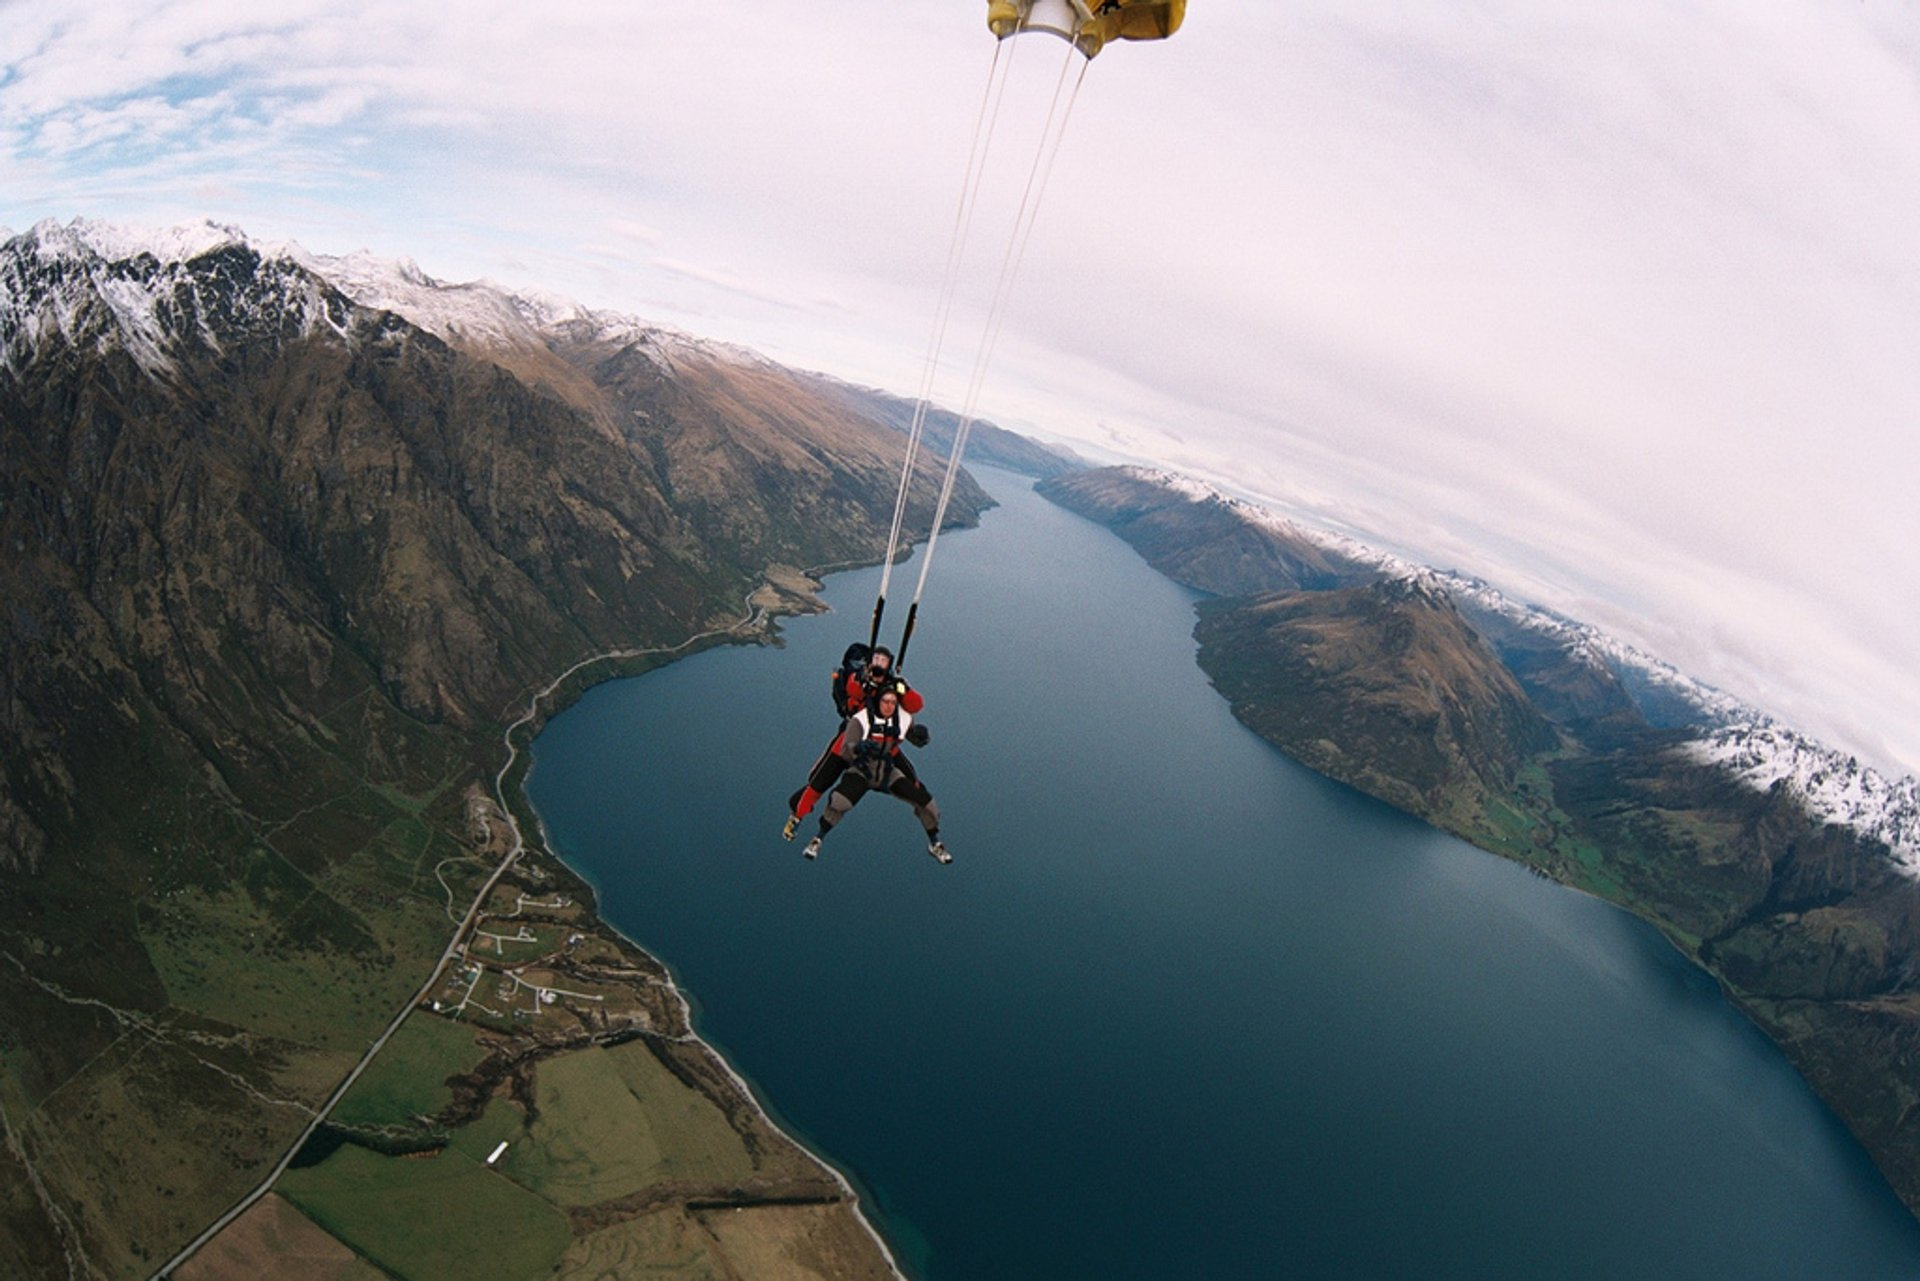 Sky diving in Quuenstown New Zealand 2020